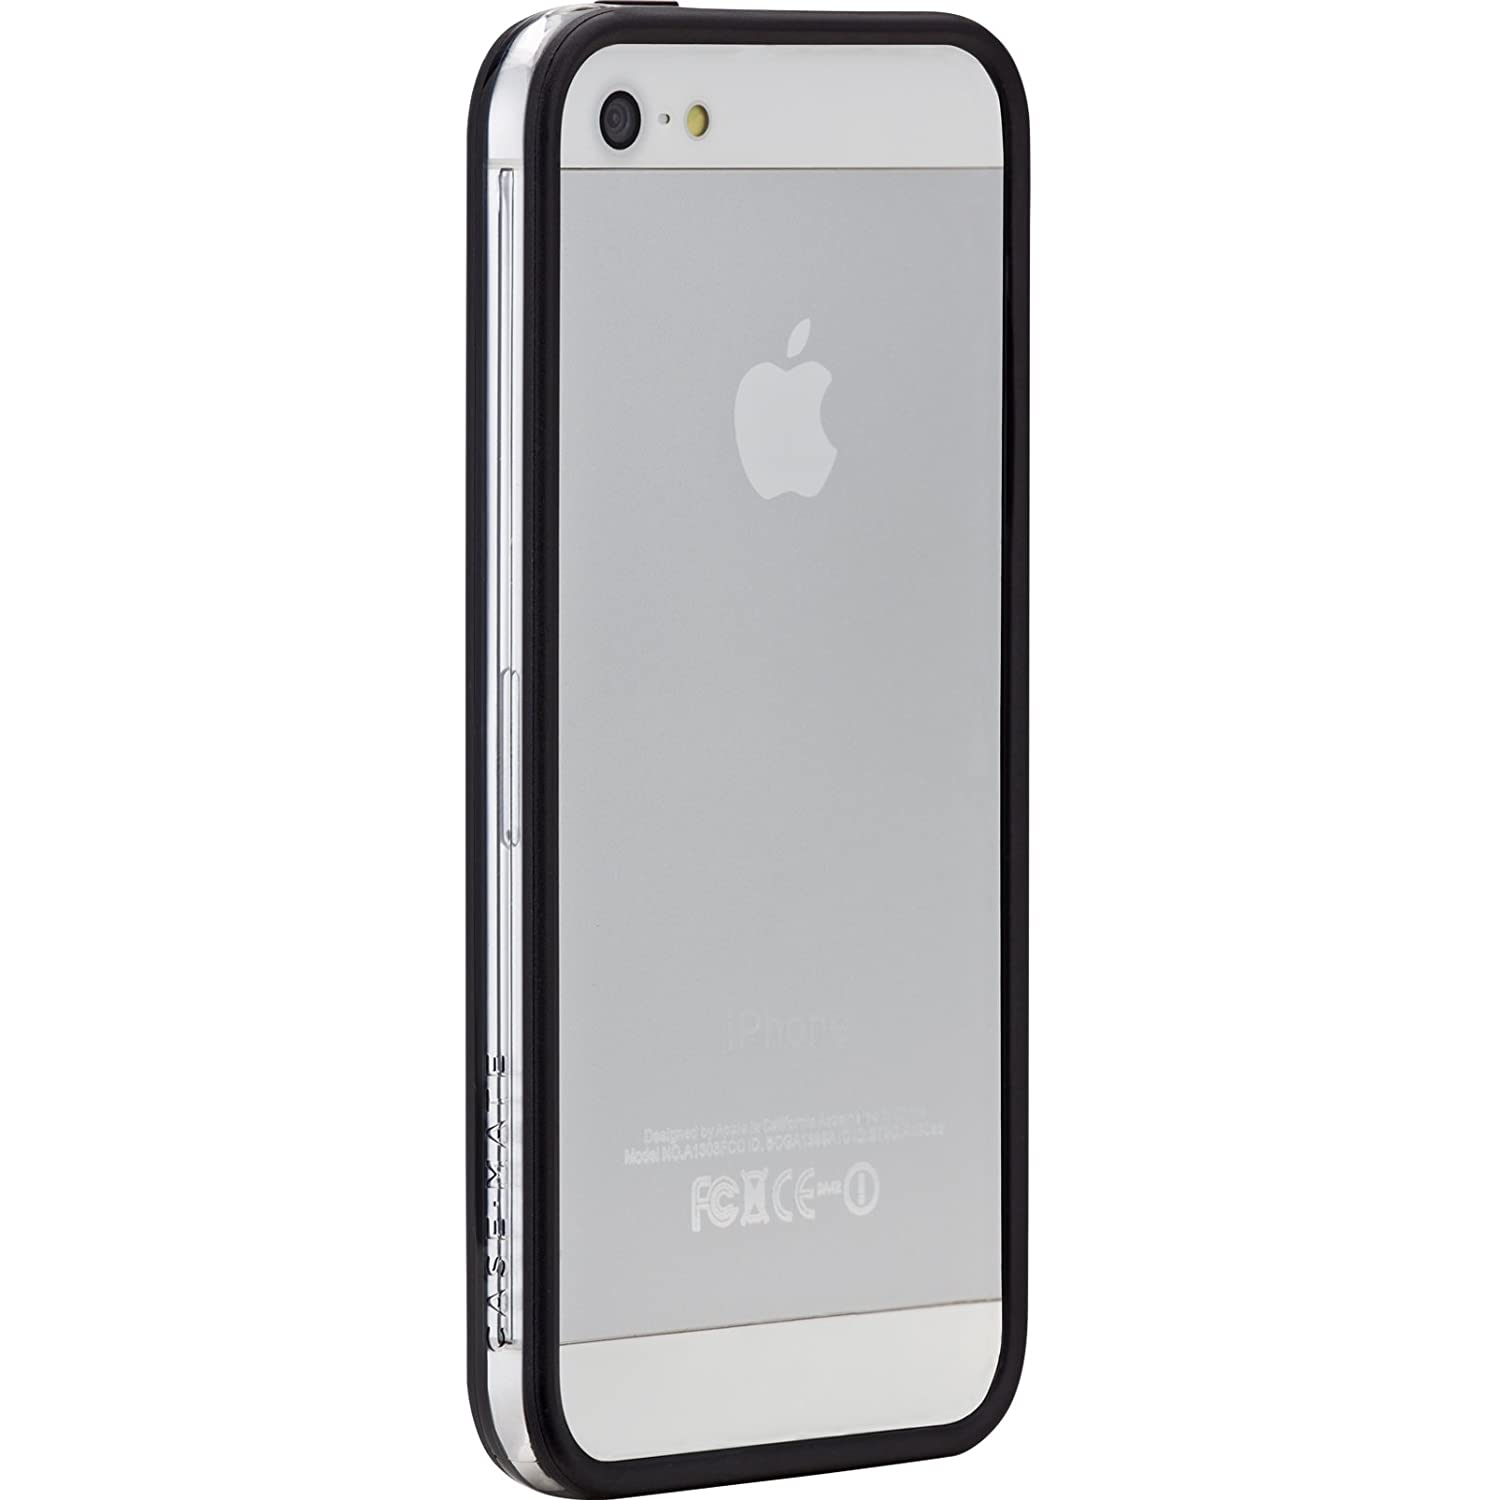 Medical research and corporate technology case mate iphone 4 case - Amazon Com Case Mate Hula Case For Iphone 5 5s Black Retail Packaging Black Cell Phones Accessories